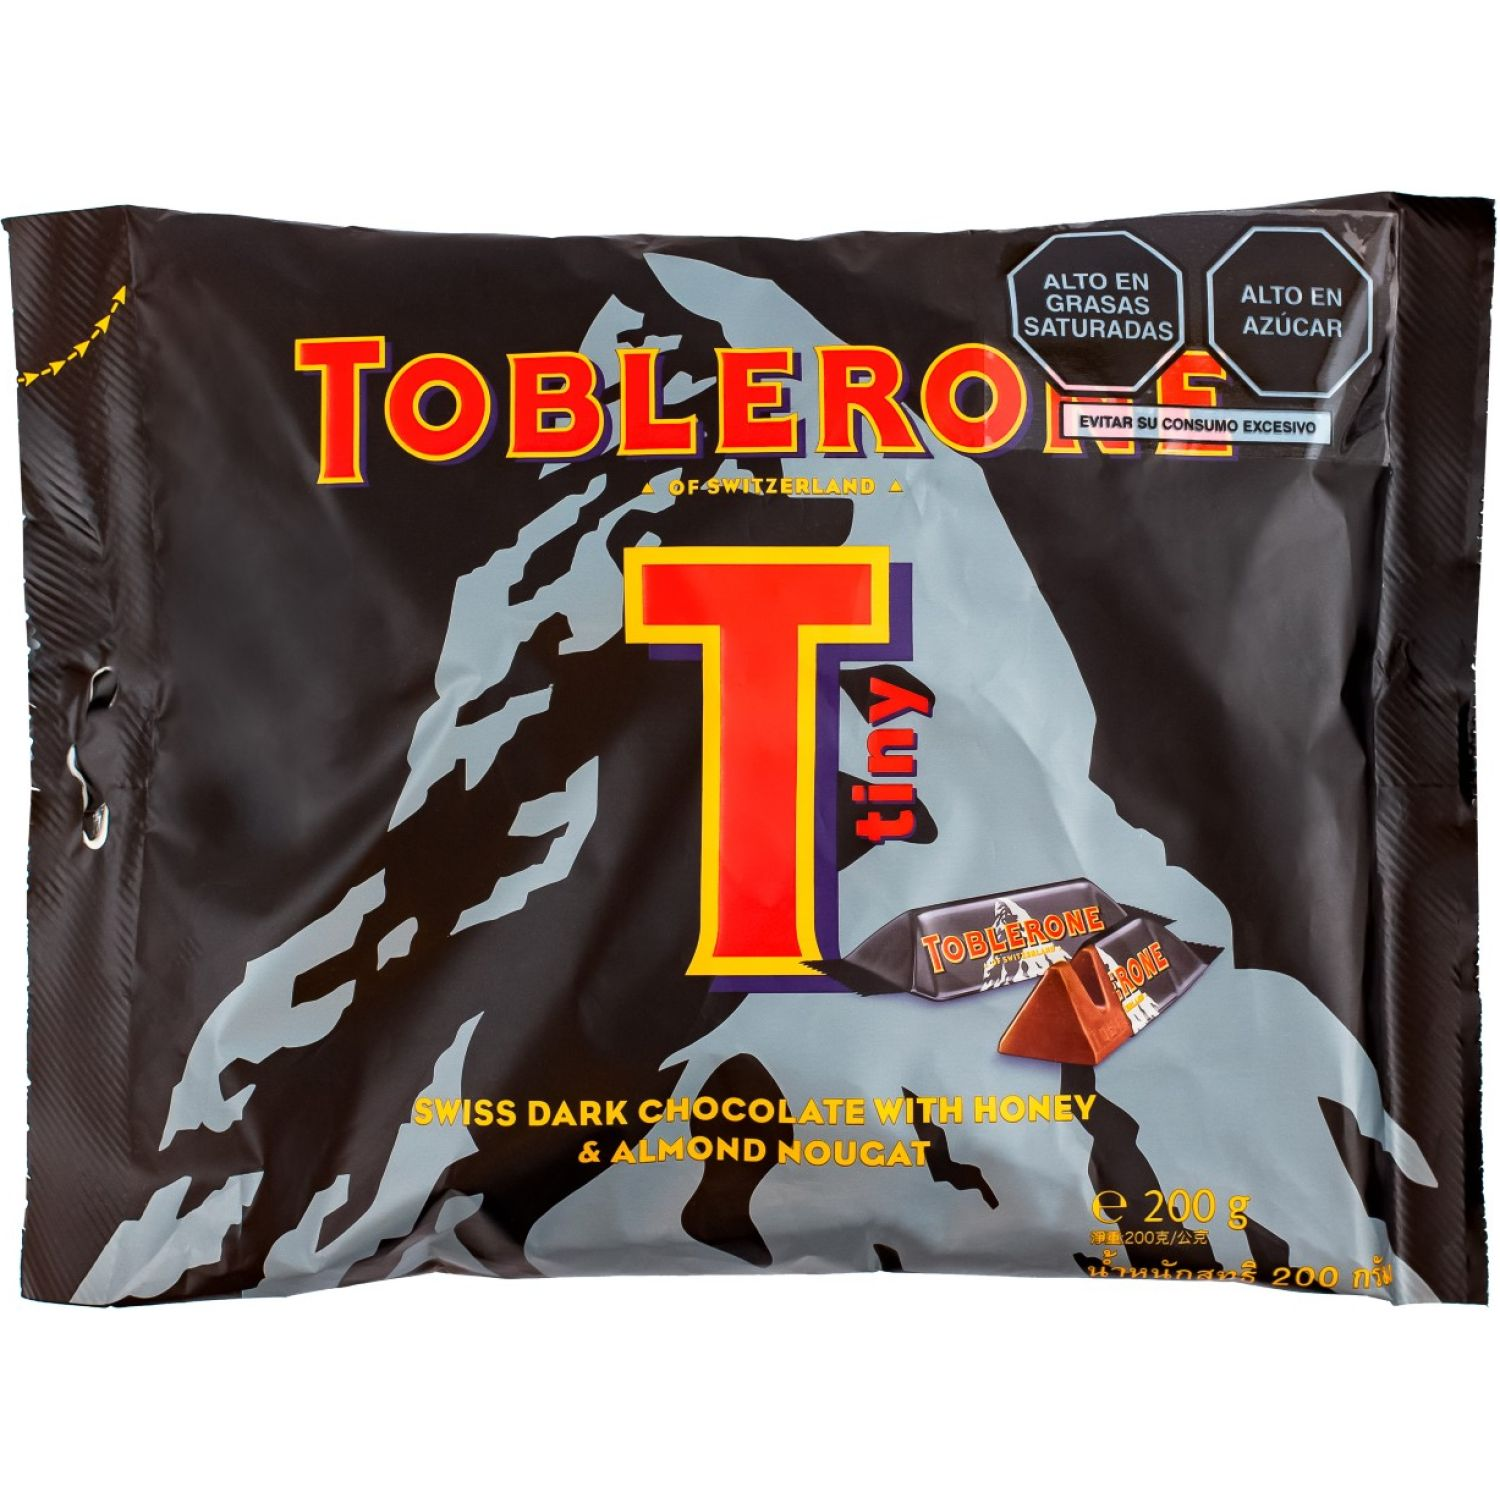 Toblerone Tiny Dark 200g Sin color Barras de caramelo y chocolate